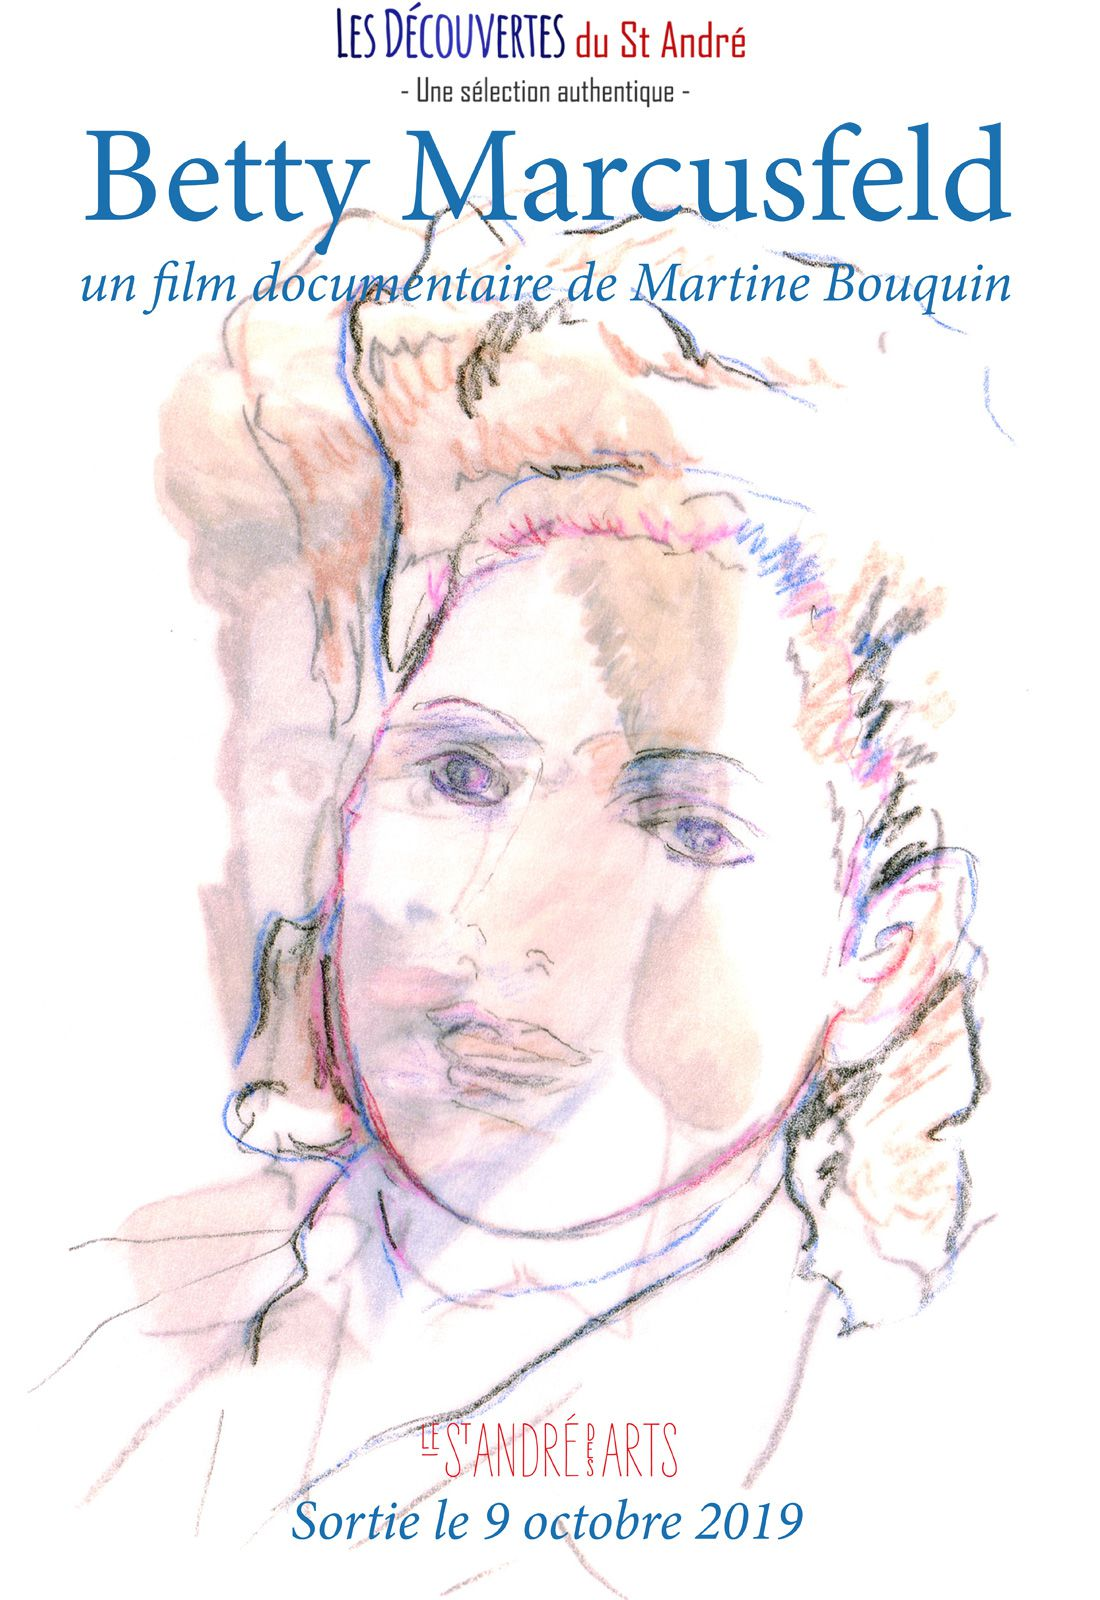 Betty Marcusfeld - Documentaire (2015)